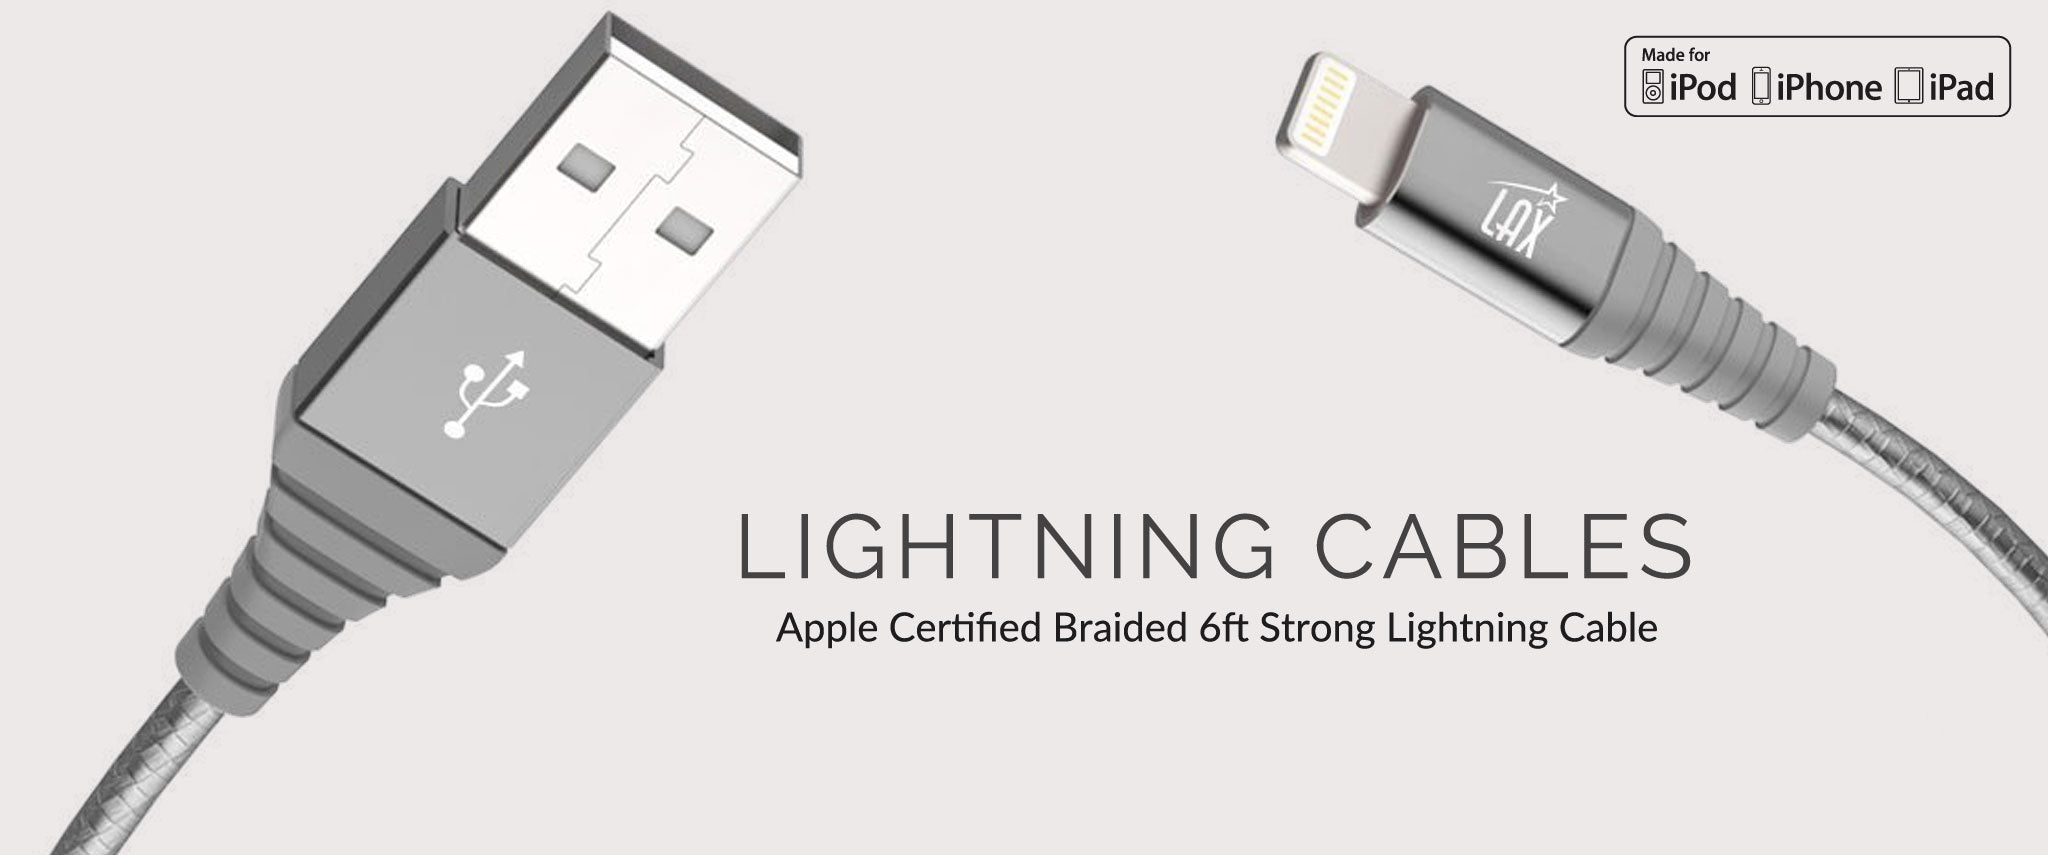 Apple Certified Braided 6ft Lightning Cable